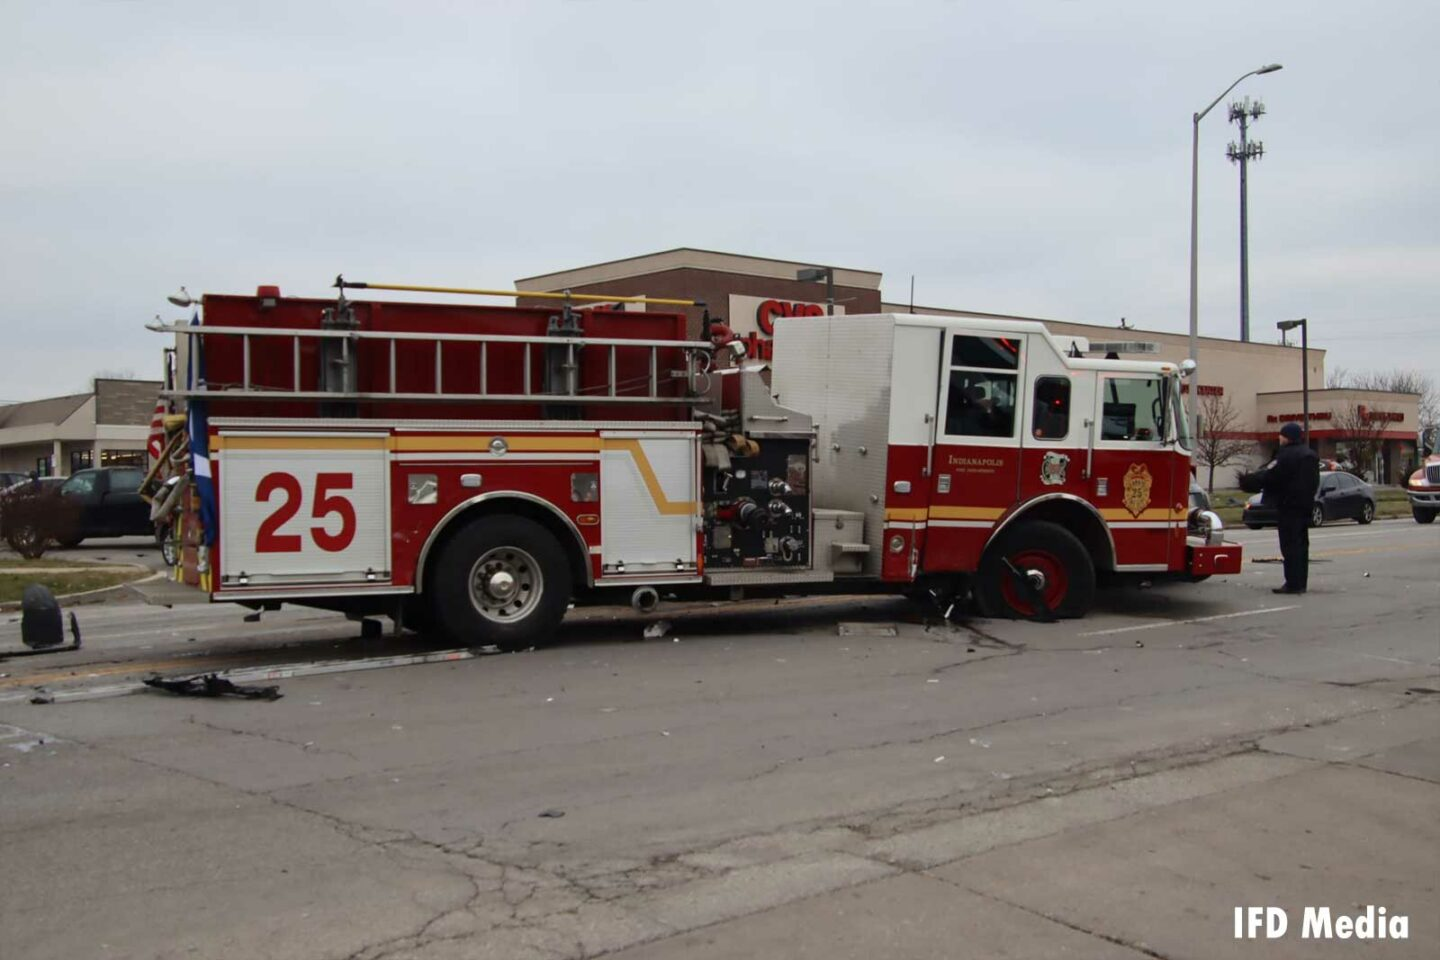 Indy Fire Engine 25 after collision